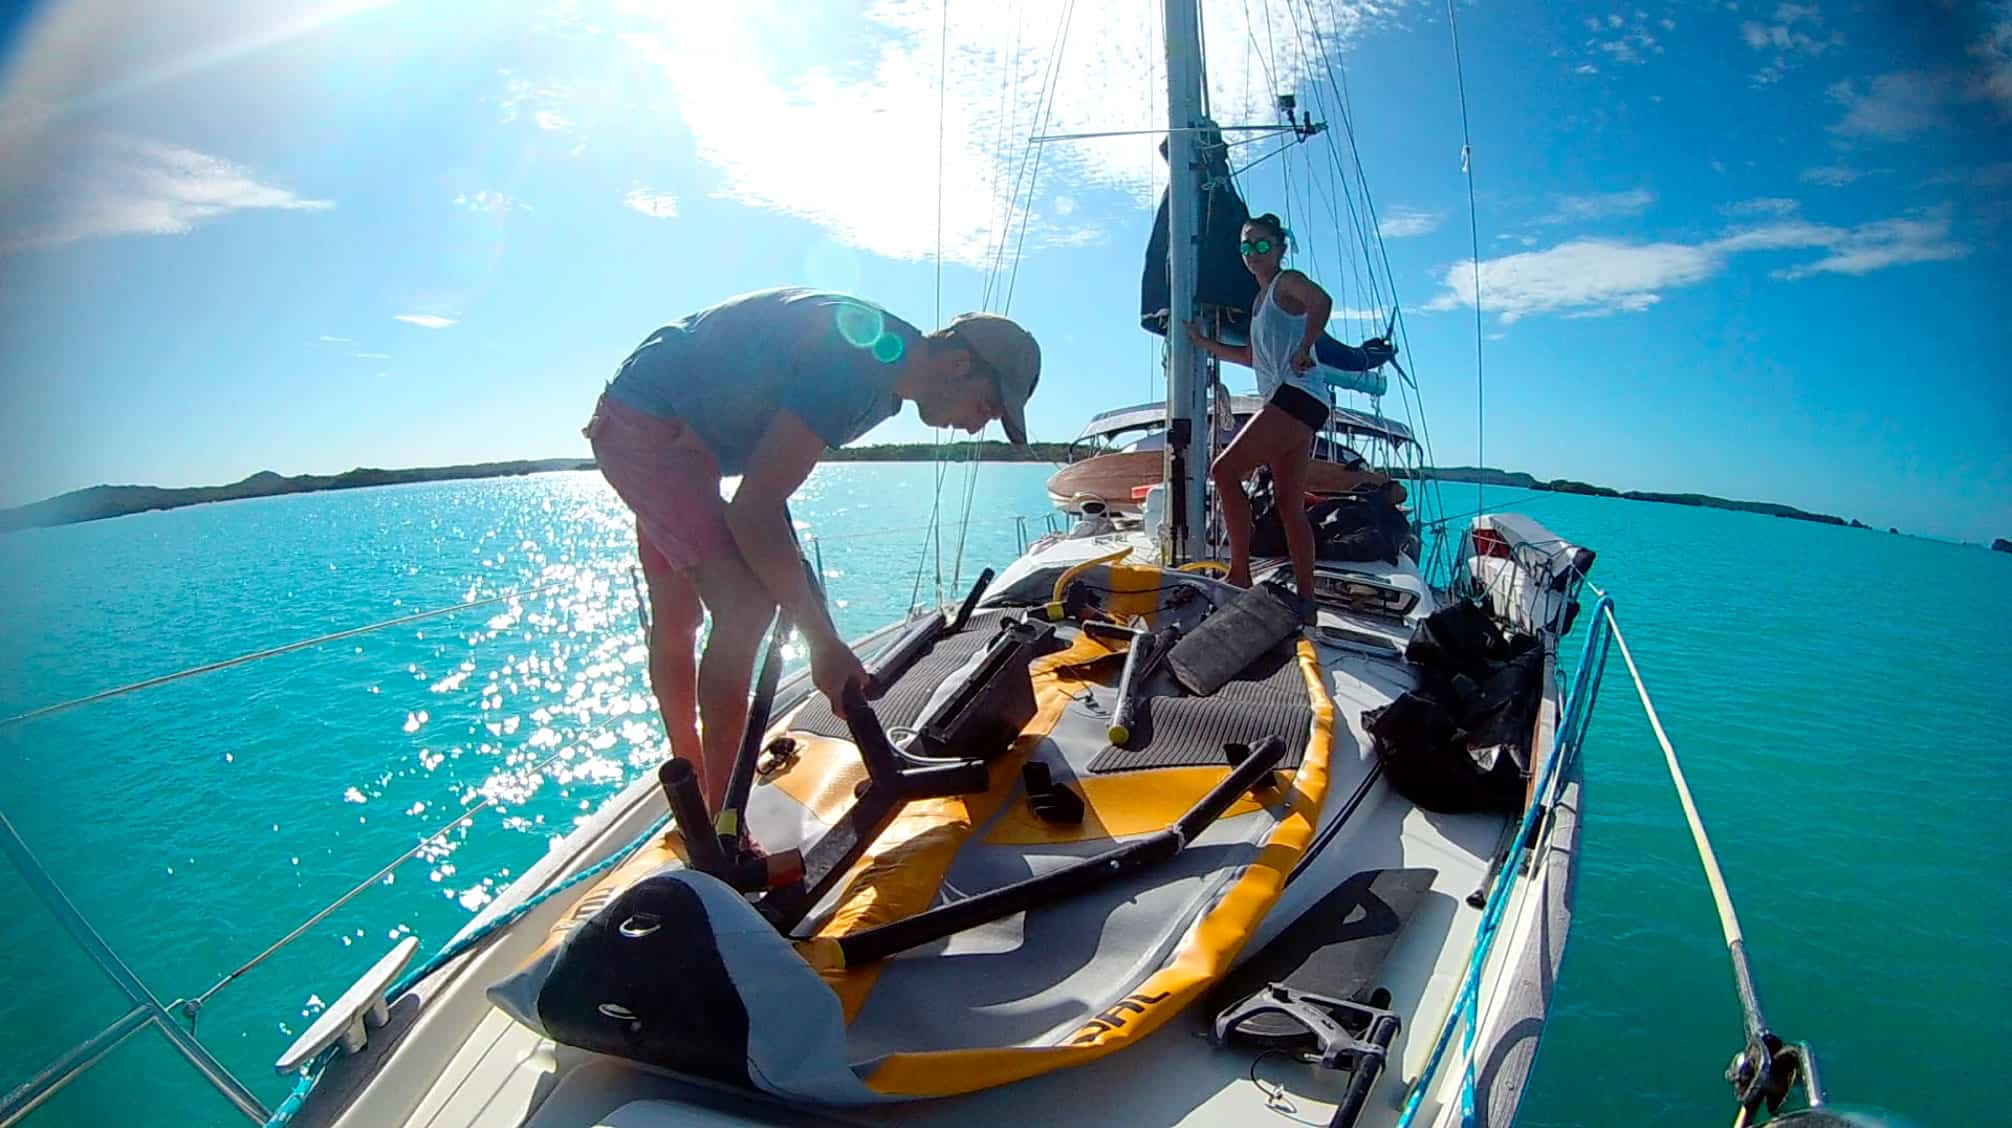 Tiwal inflatable sailboat on a Beneteau 43 yacht